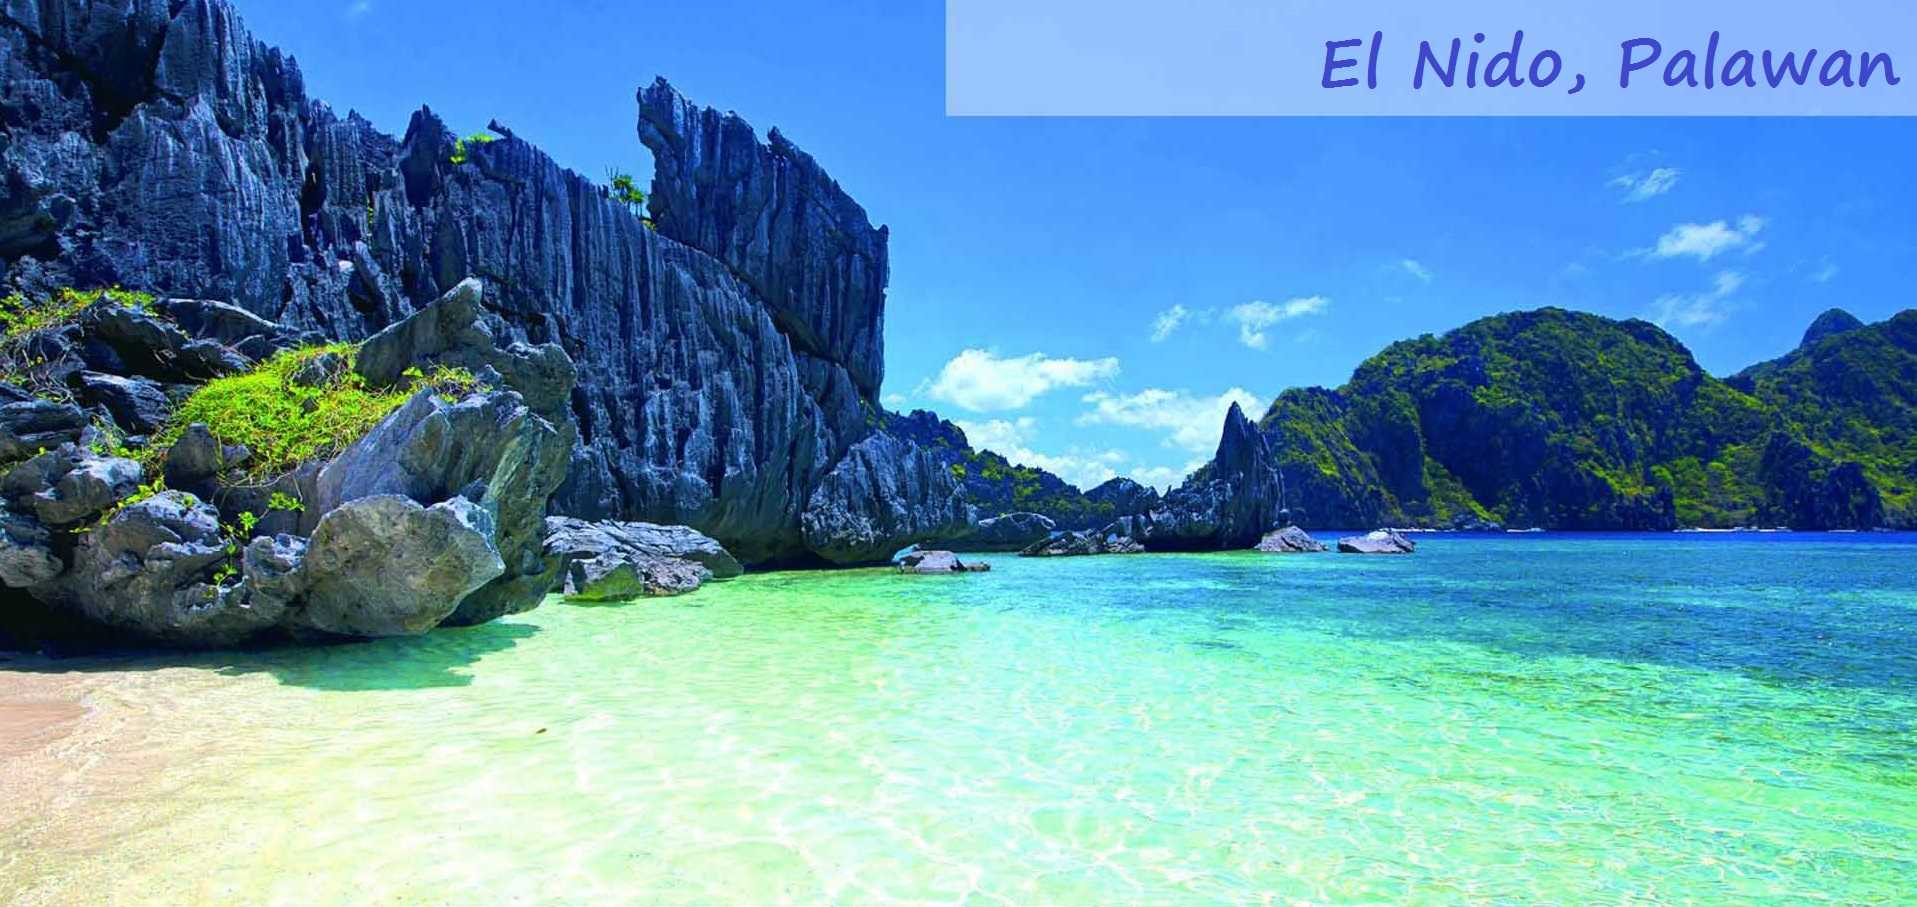 Velca Travel Amp Tours Inc El Nido